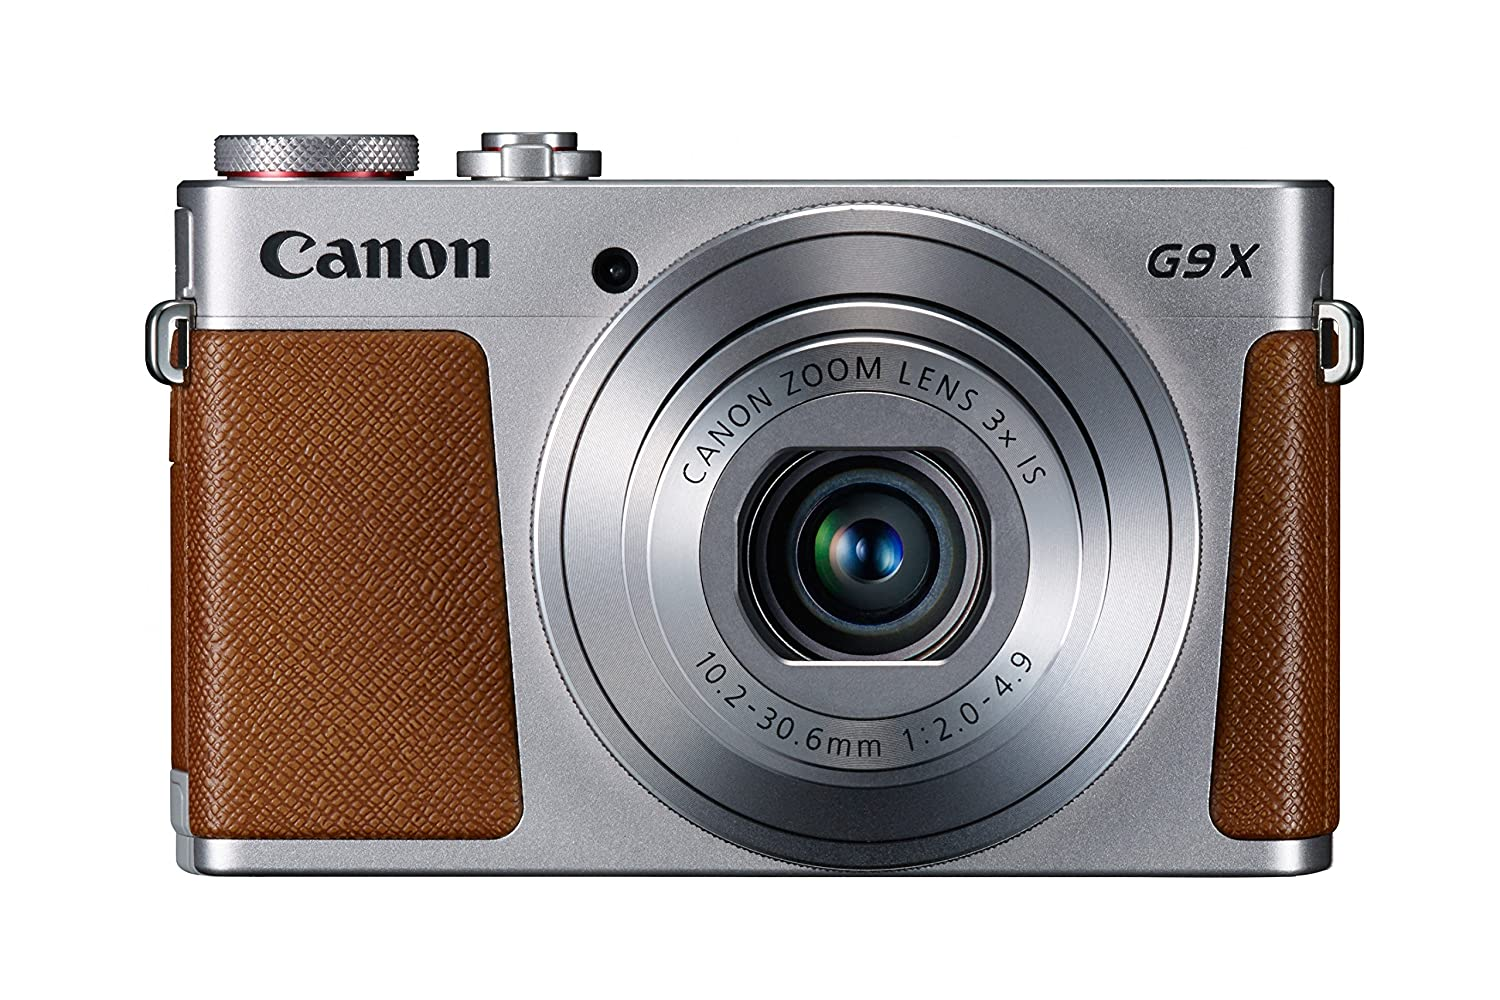 Canon Power Shot G9 X Digital Camera With 3x Optical Zoom, Built In Wi Fi And 3 Inch Lcd Touch Panel (Silver) by Canon